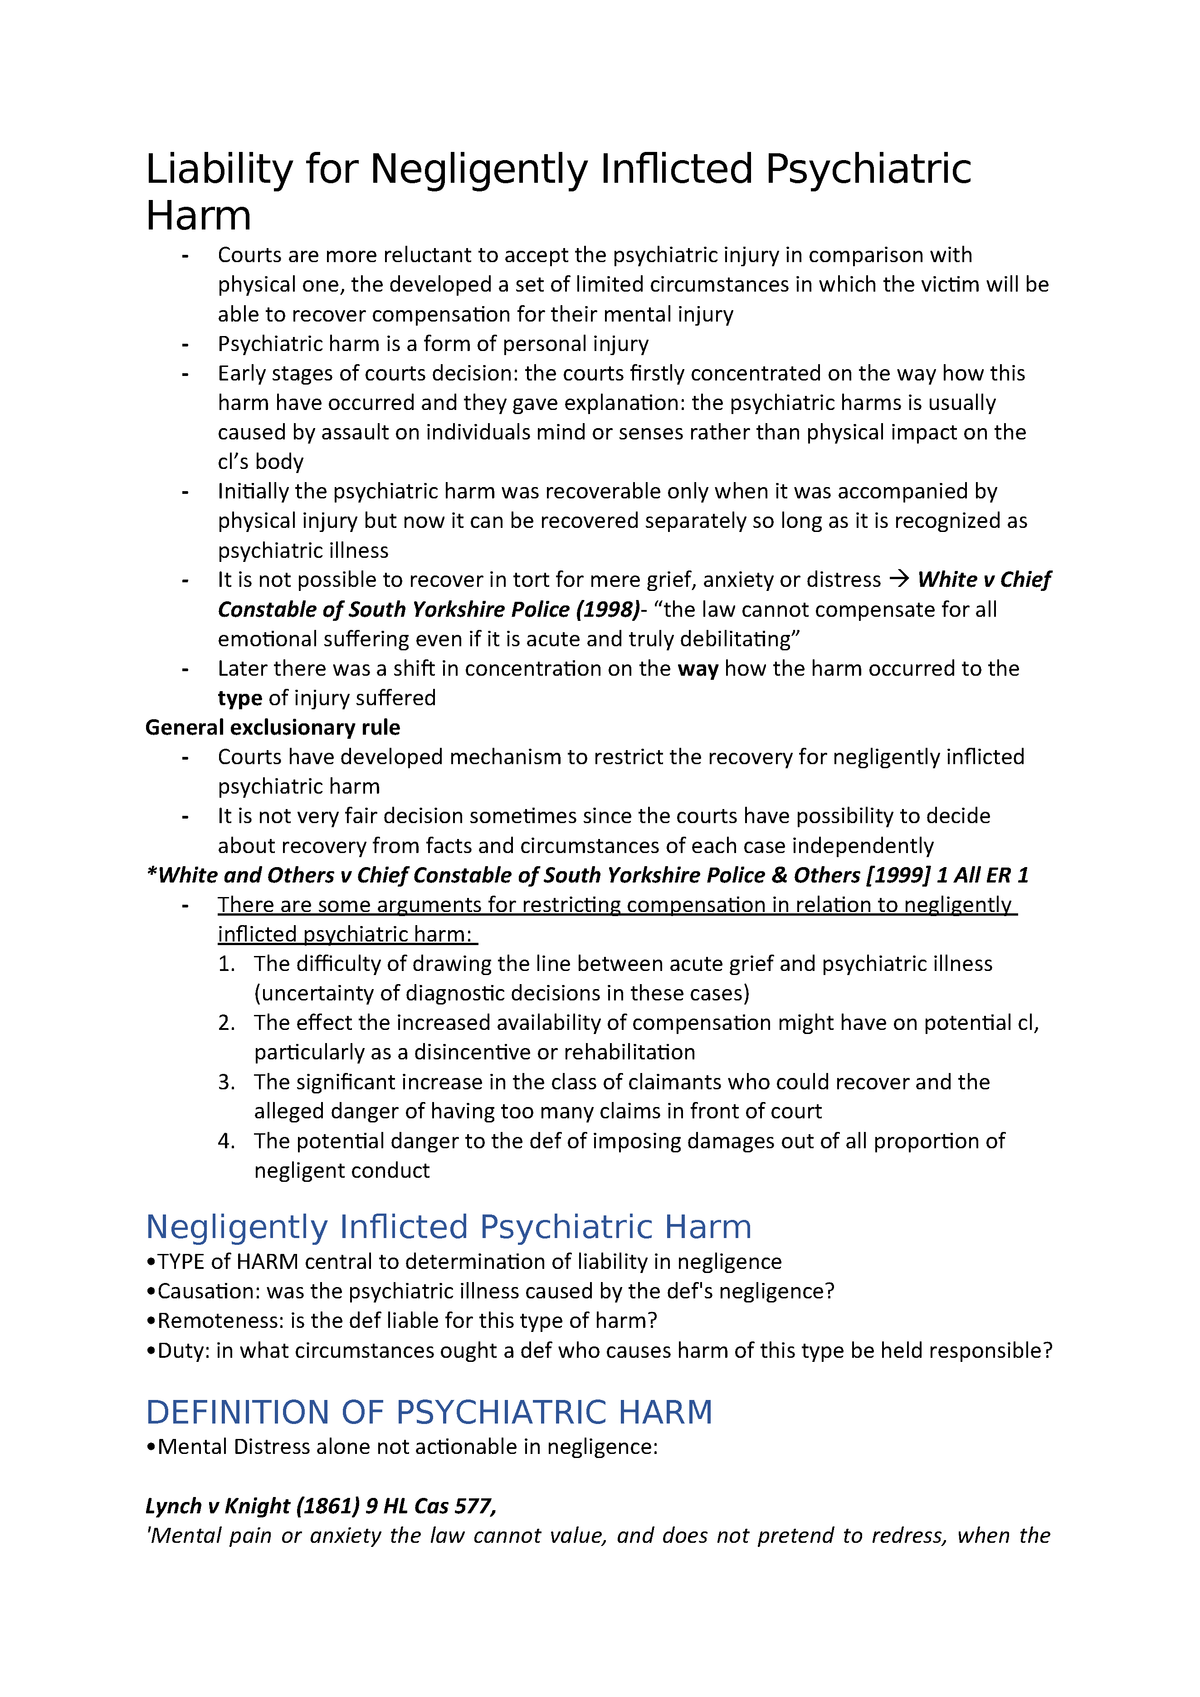 Liability for Negligently Inflicted Psychiatric Harm - M3026